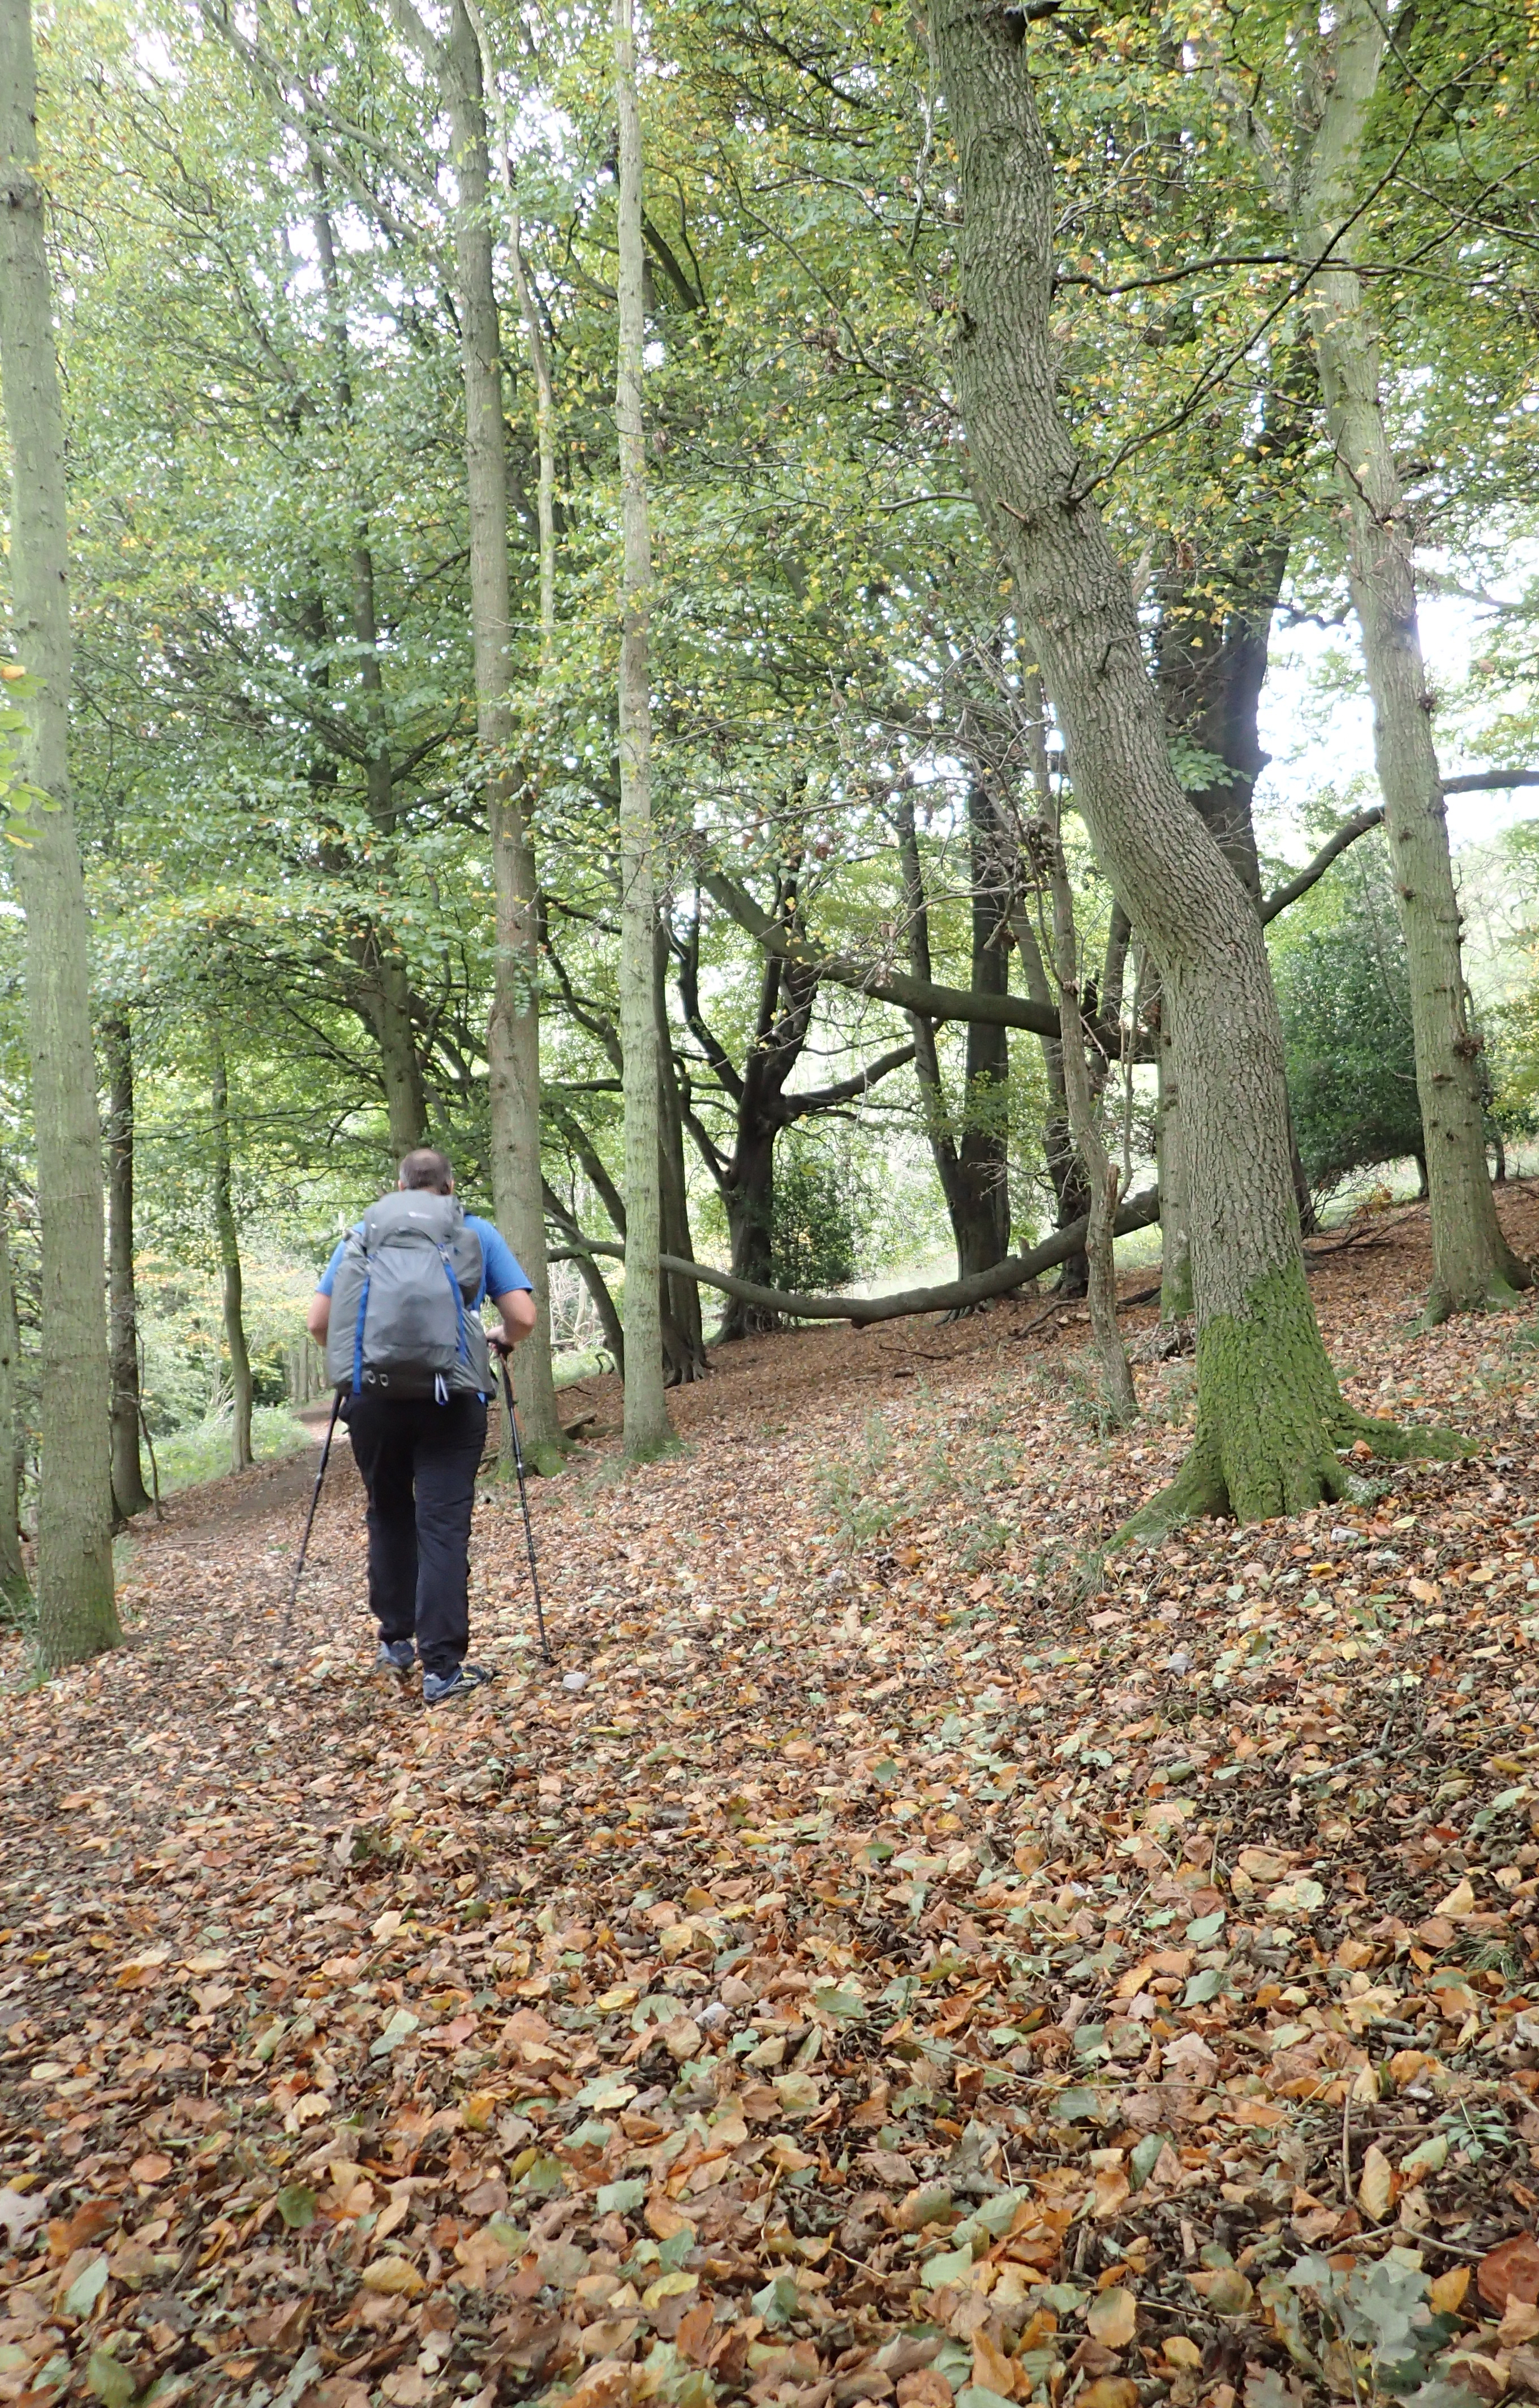 First days on the trail took occasional beautiful woodland. Easy walking with little gradient